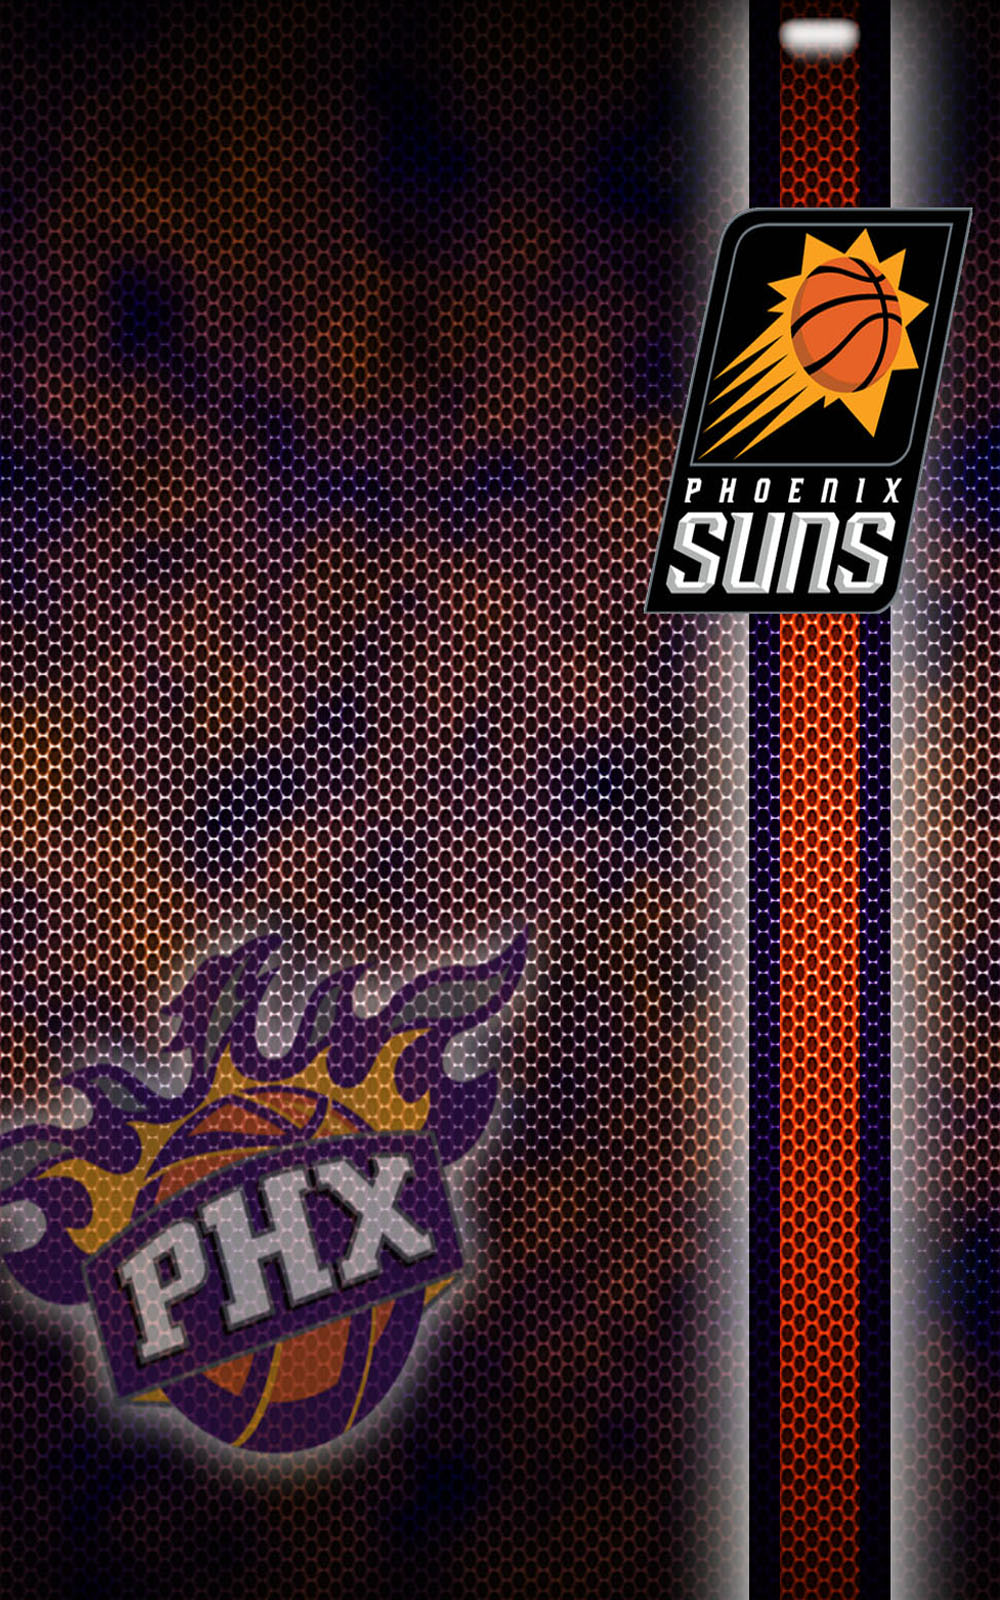 Phoenix And Girl Wallpaper Phoenix Suns Download Free Hd Mobile Wallpapers